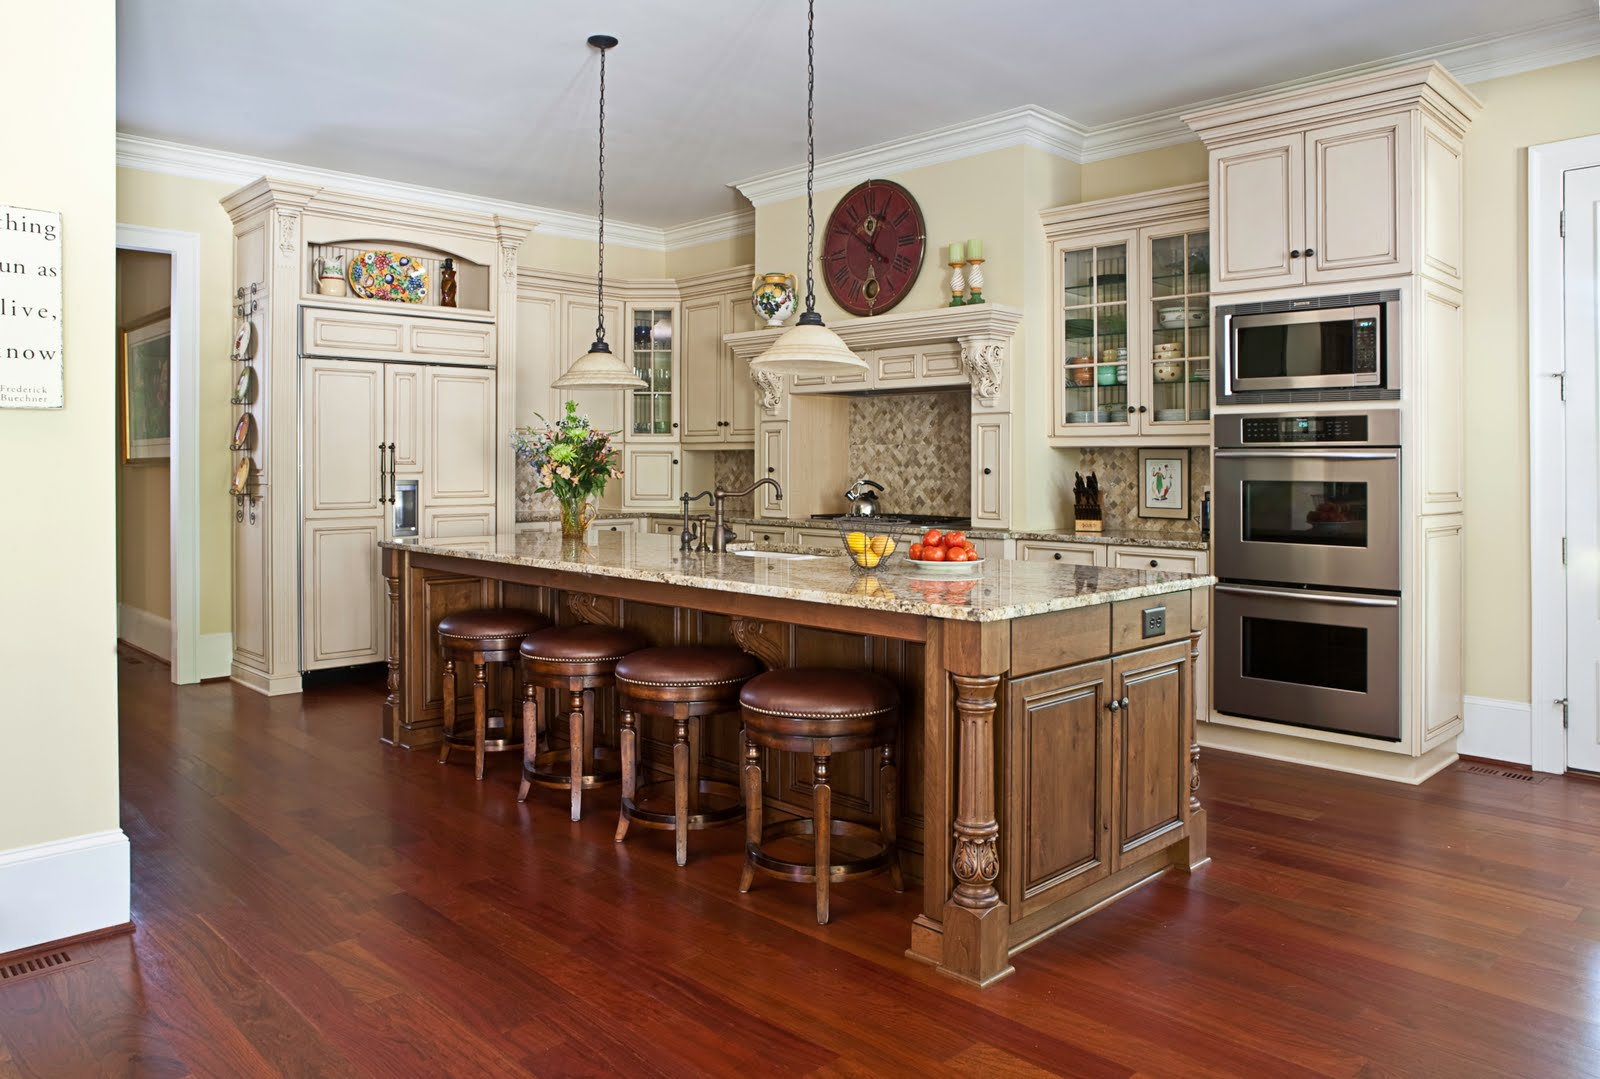 height of kitchen island cheryl smith associates interior design what height should a kitchen island be 5100